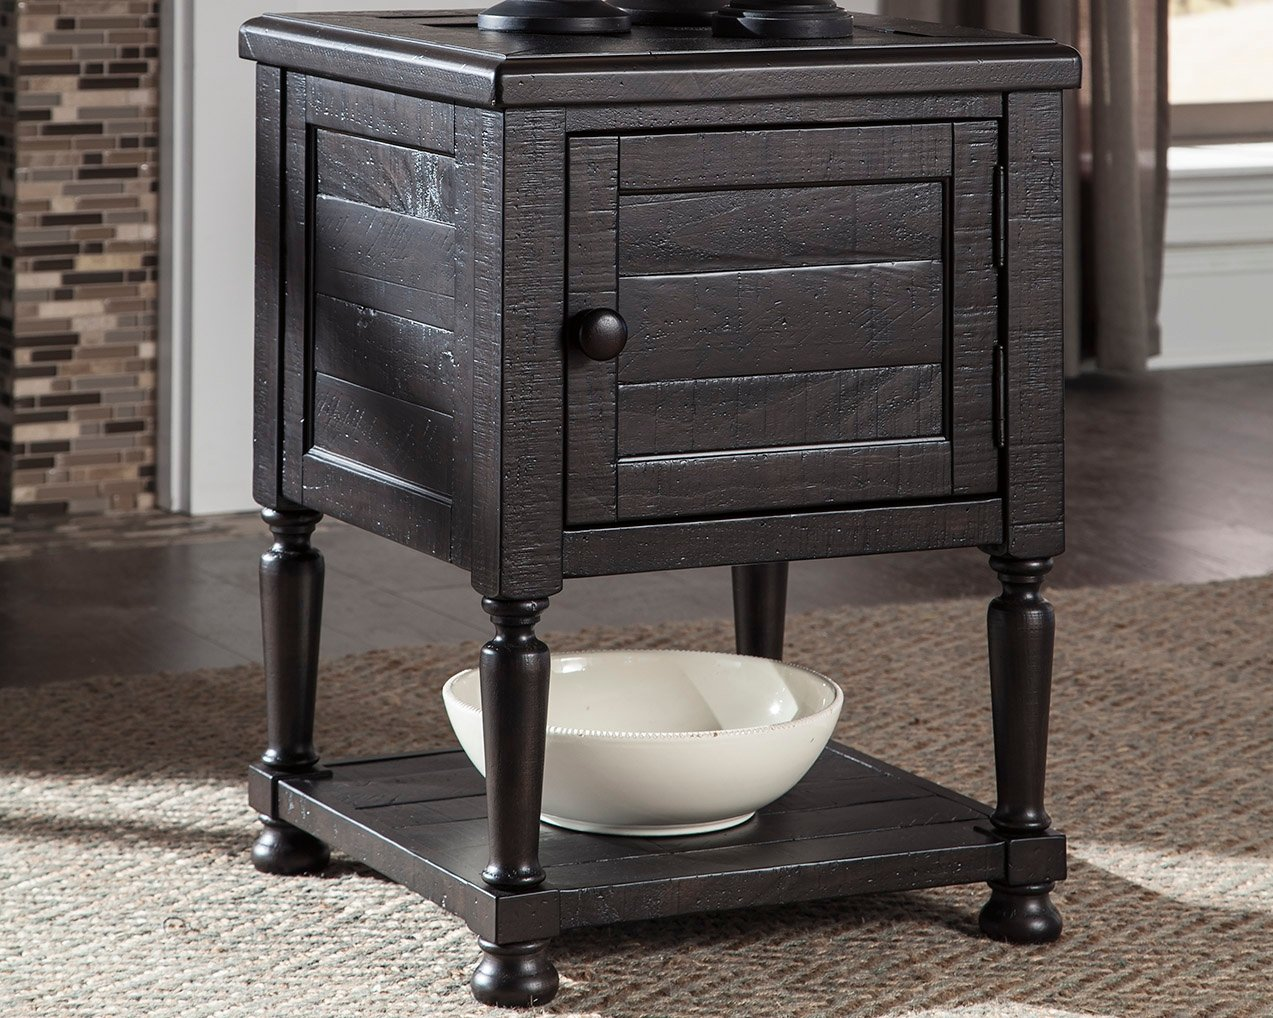 Ashley Furniture Signature Design Charcoal T835-1 Sharlowe Casual Rectangular Cocktail Table with Drawer Storage